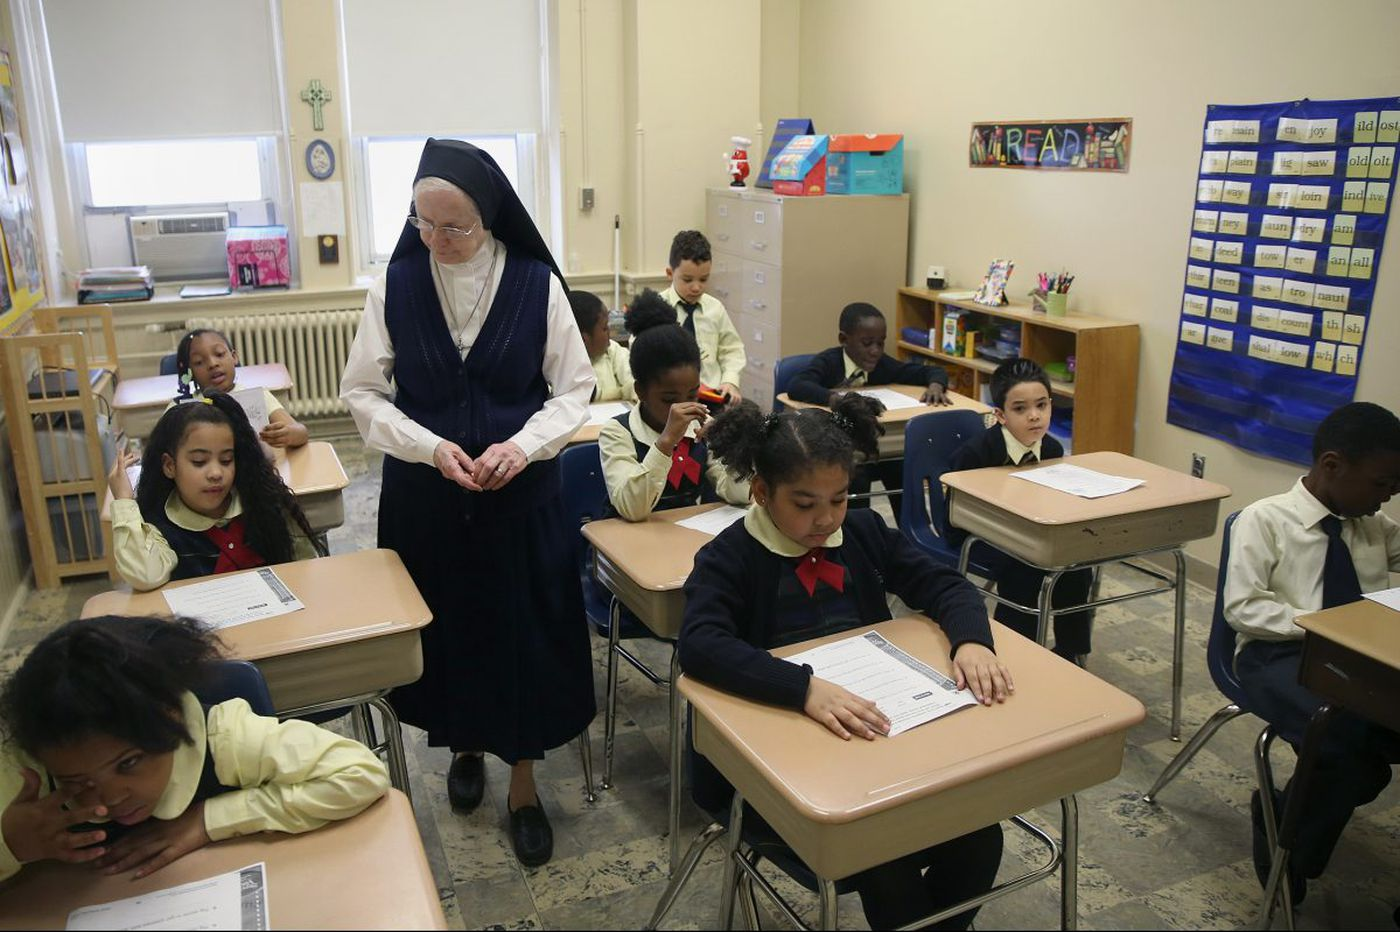 Catholic schools have fewer nuns, but those who remain inspire